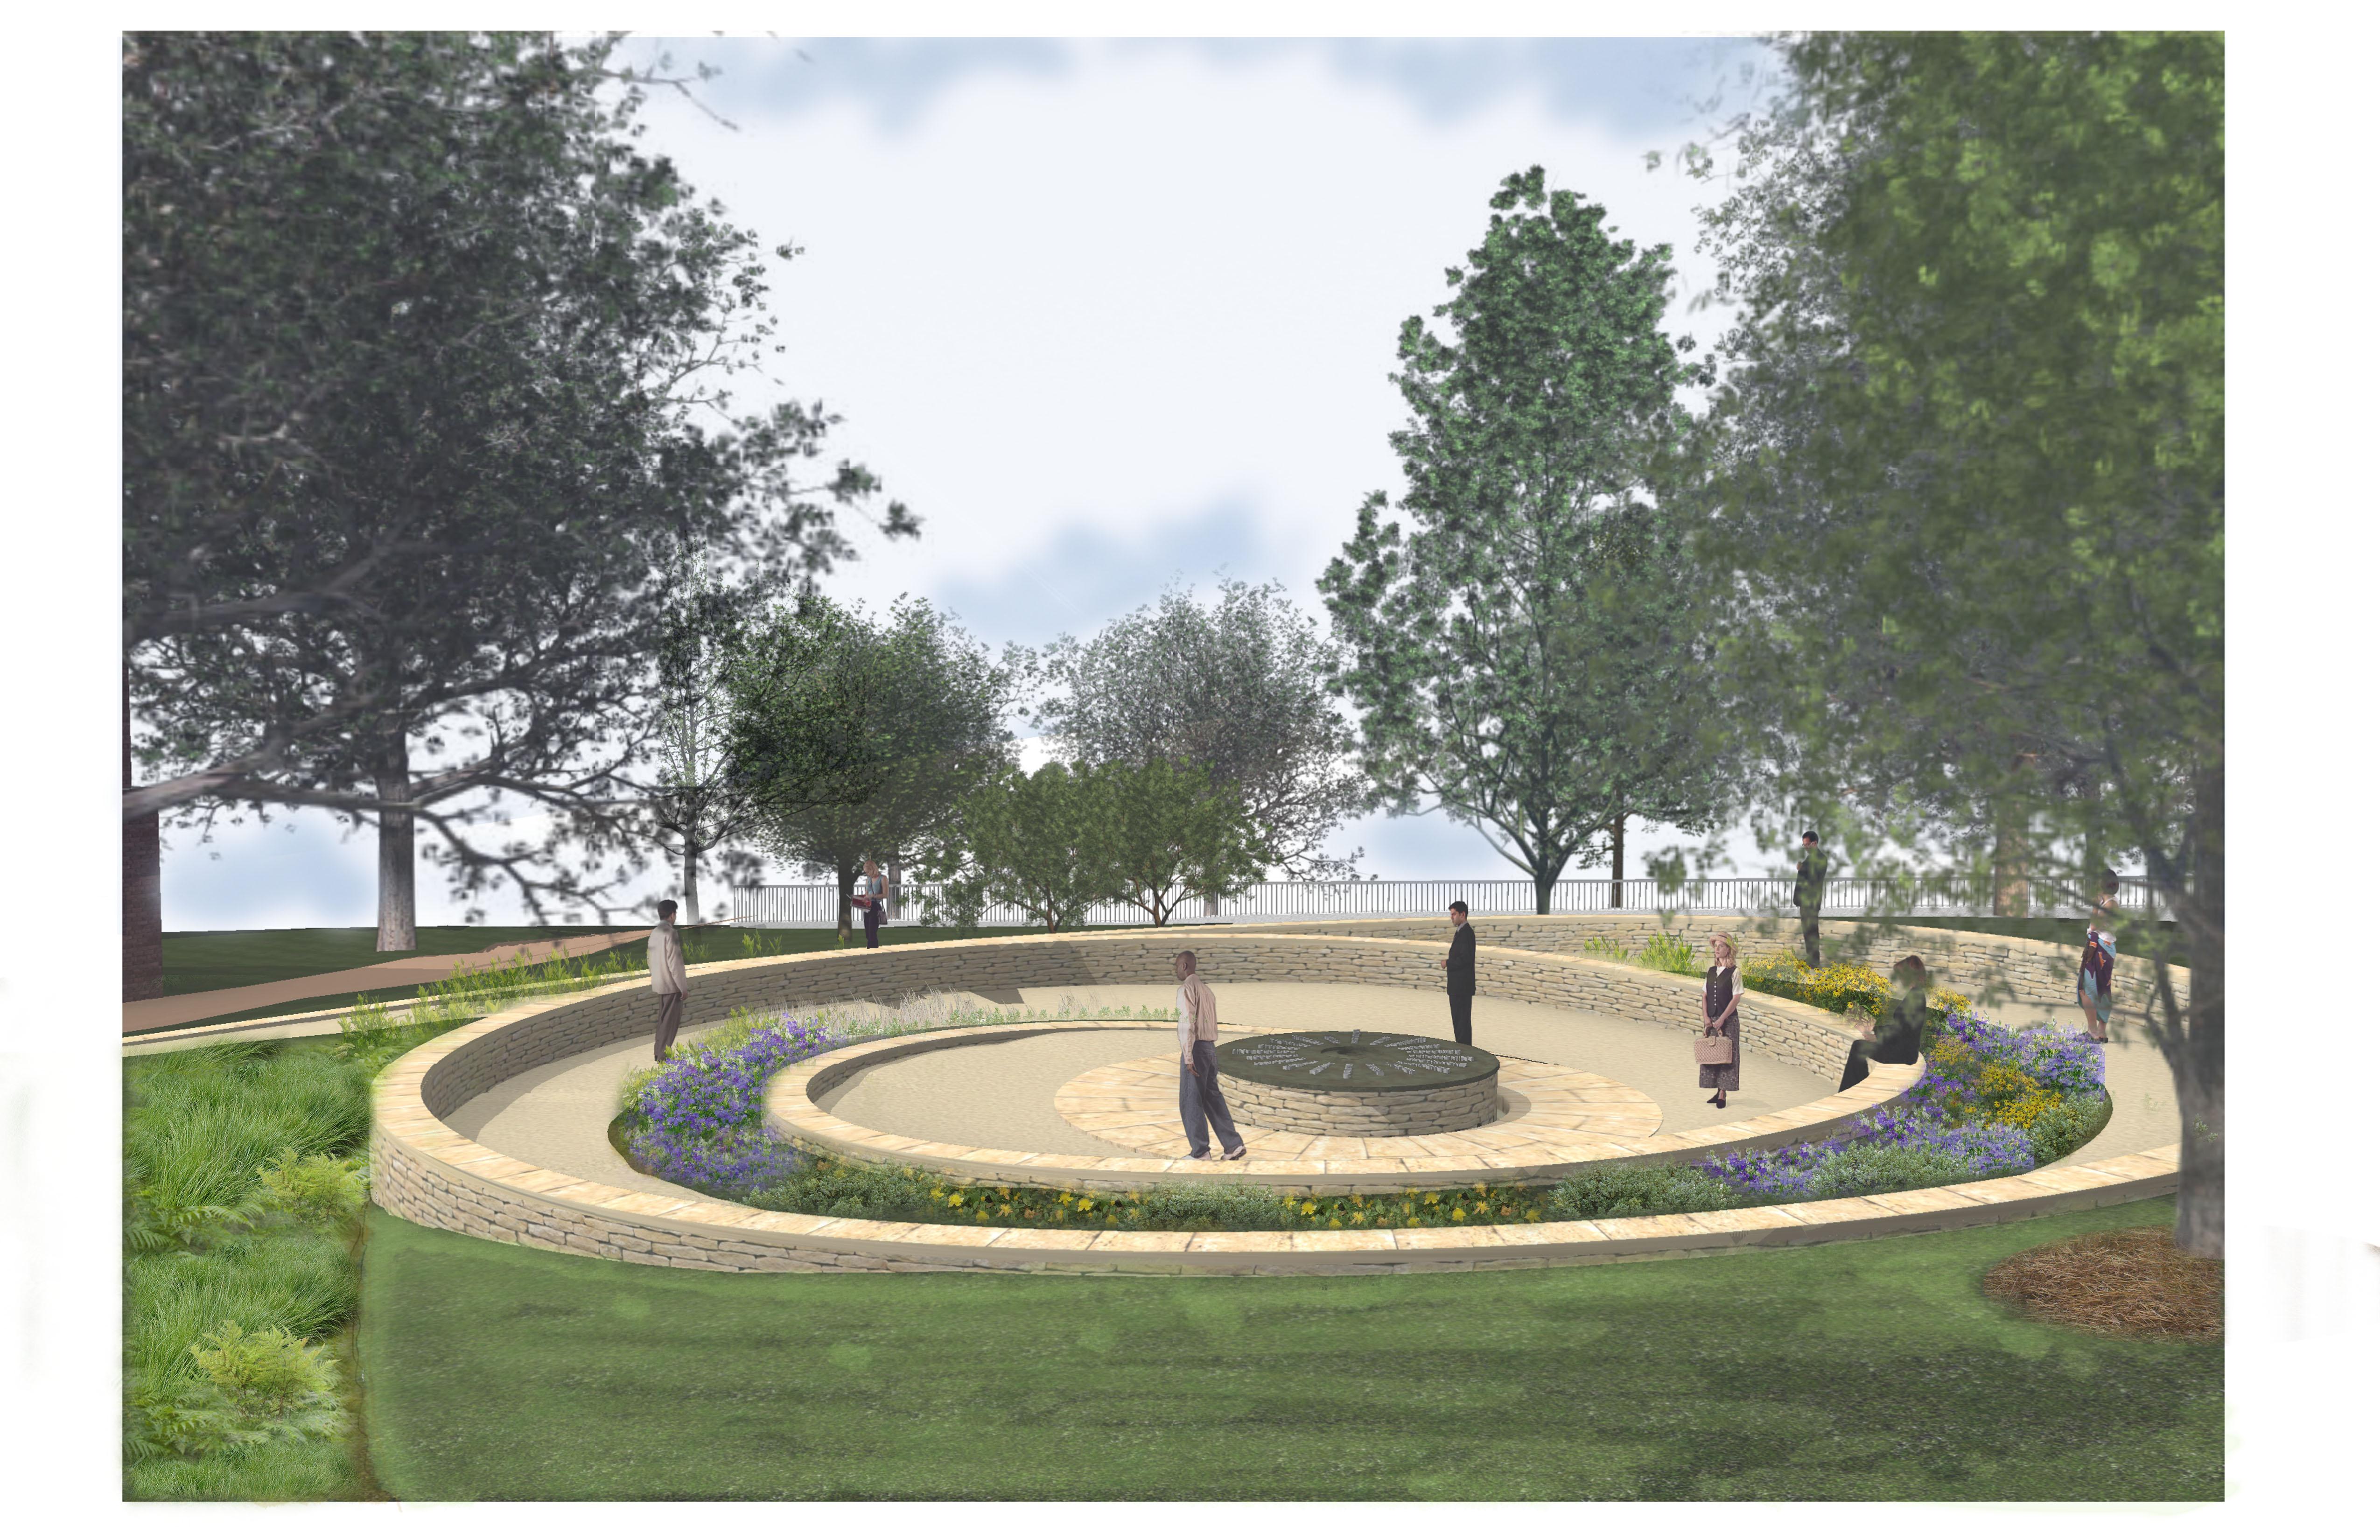 Design Approved for a Tribute Honoring Virginia's Native Peoples